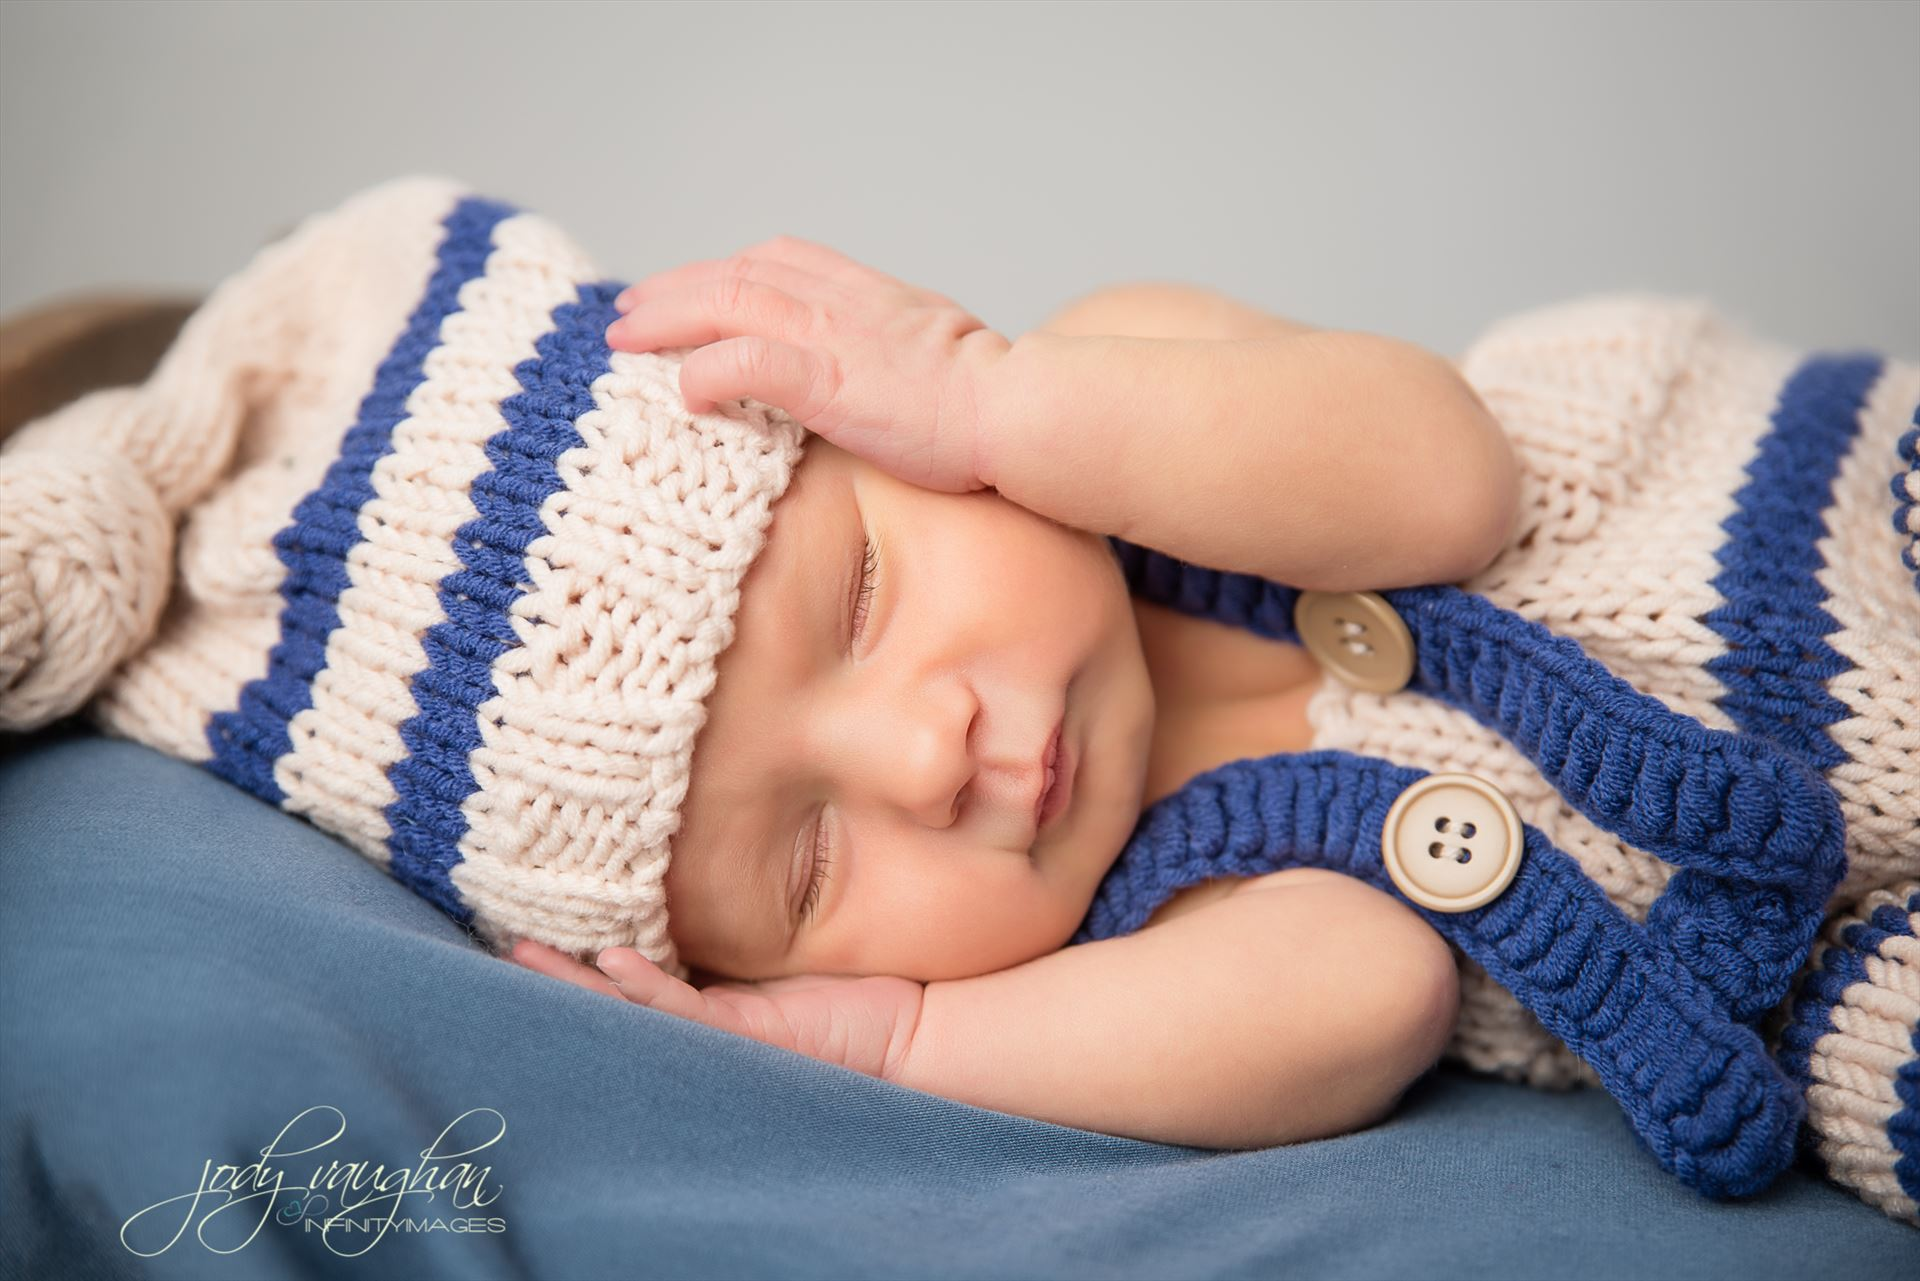 Newborn 27 -  by Jody Vaughan Infinity Images